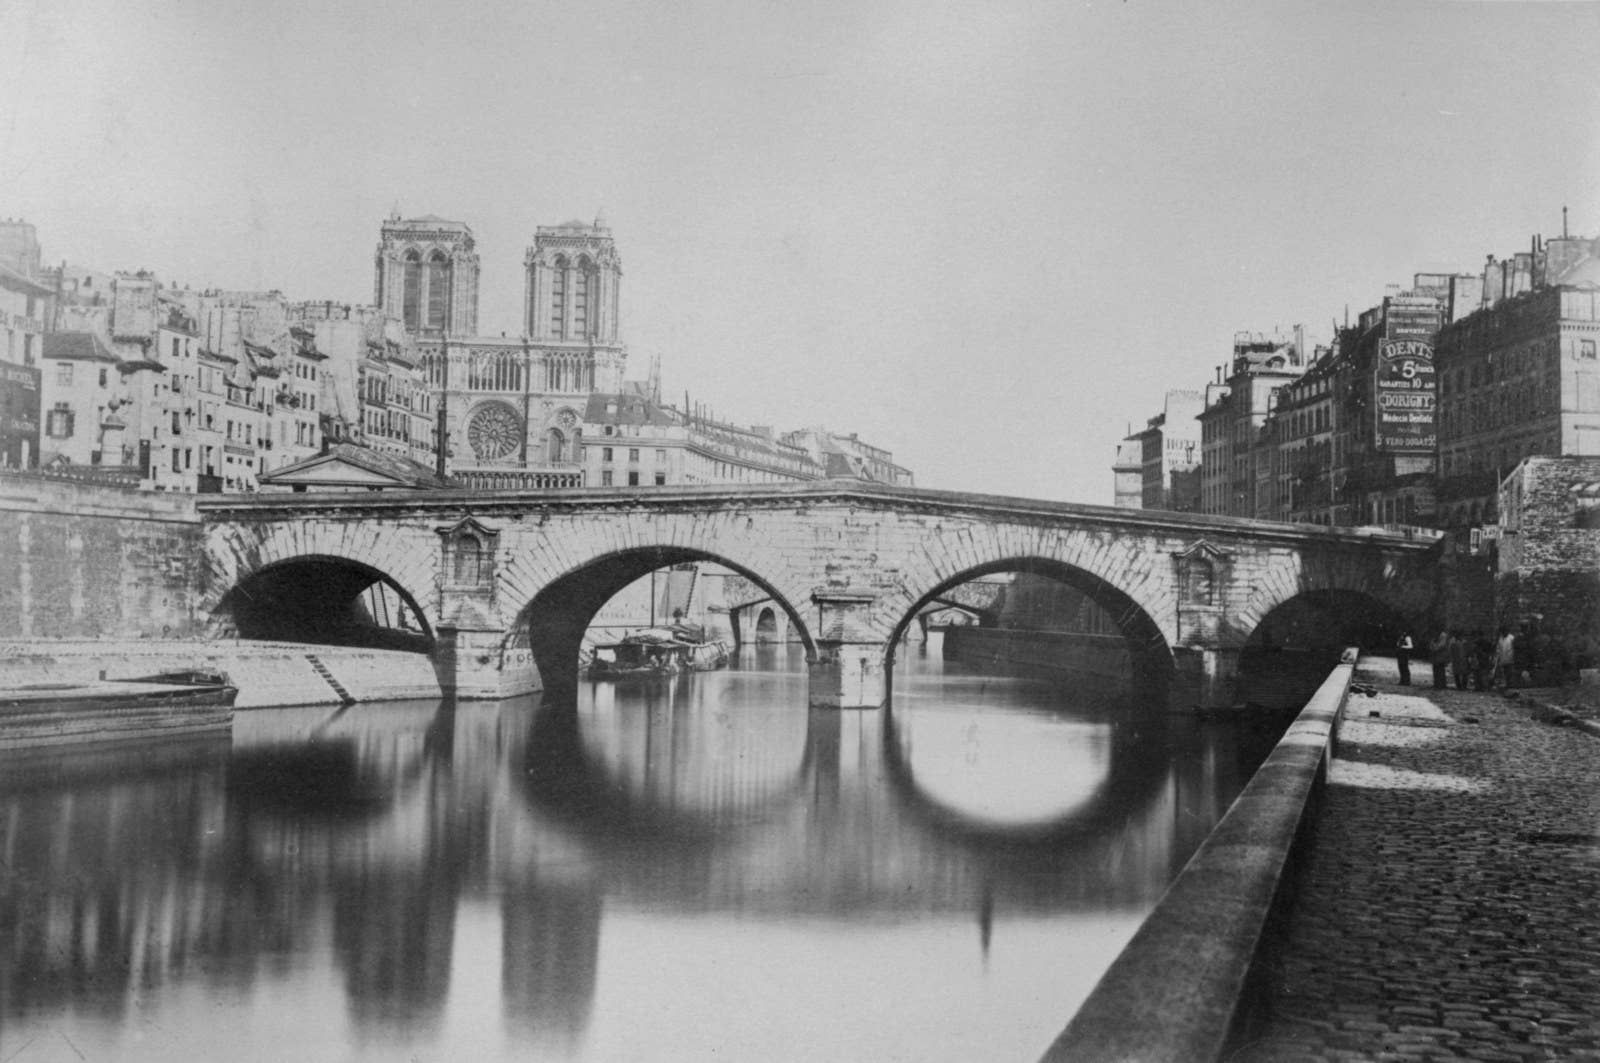 The Saint-Michel bridge, the Hôtel-Dieu, and the Notre-Dame cathedral before 1857.